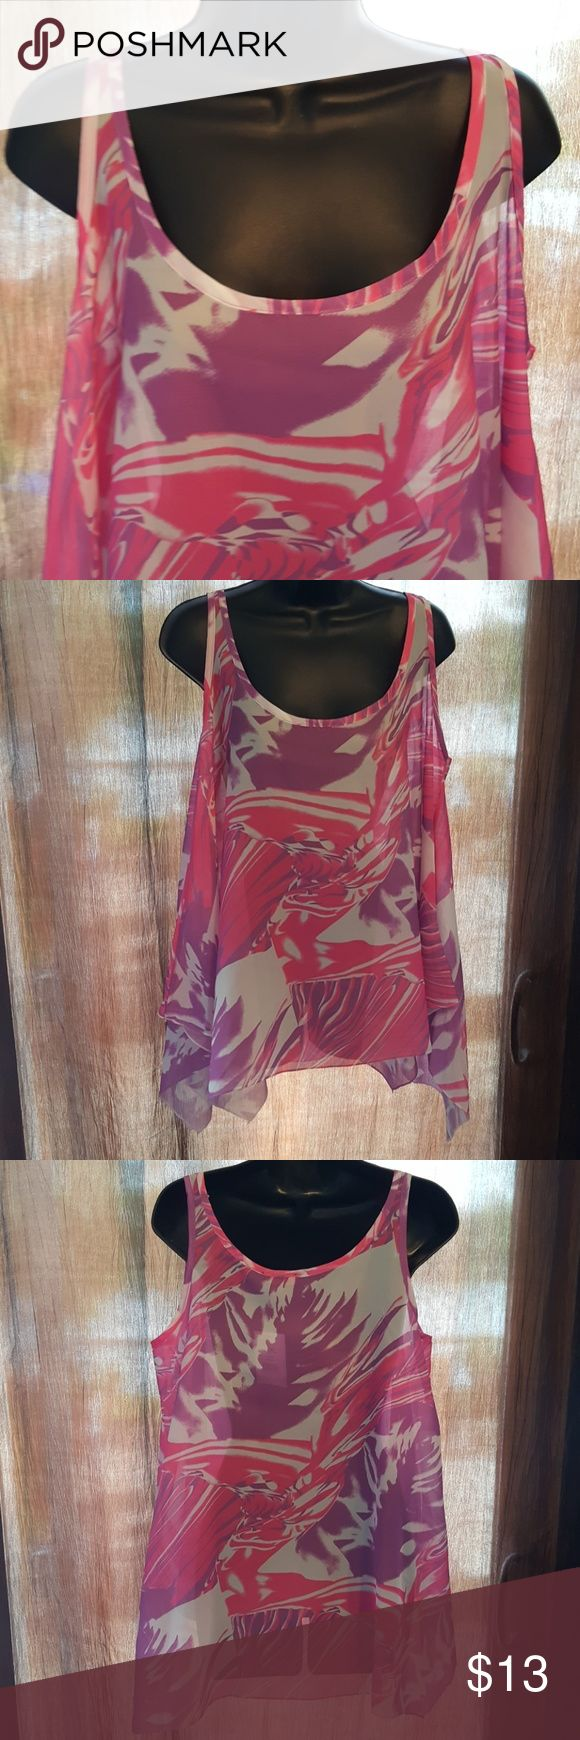 """Handkerchief Nice Medium Sheer Handkercheif Style. Can wear a camo or bathingsiut., Or maybe even a Pink/purple bra.  Length 28"""" Bust measures up too 40 100% Polyester Size L/XL NWT Tops Muscle Tees"""